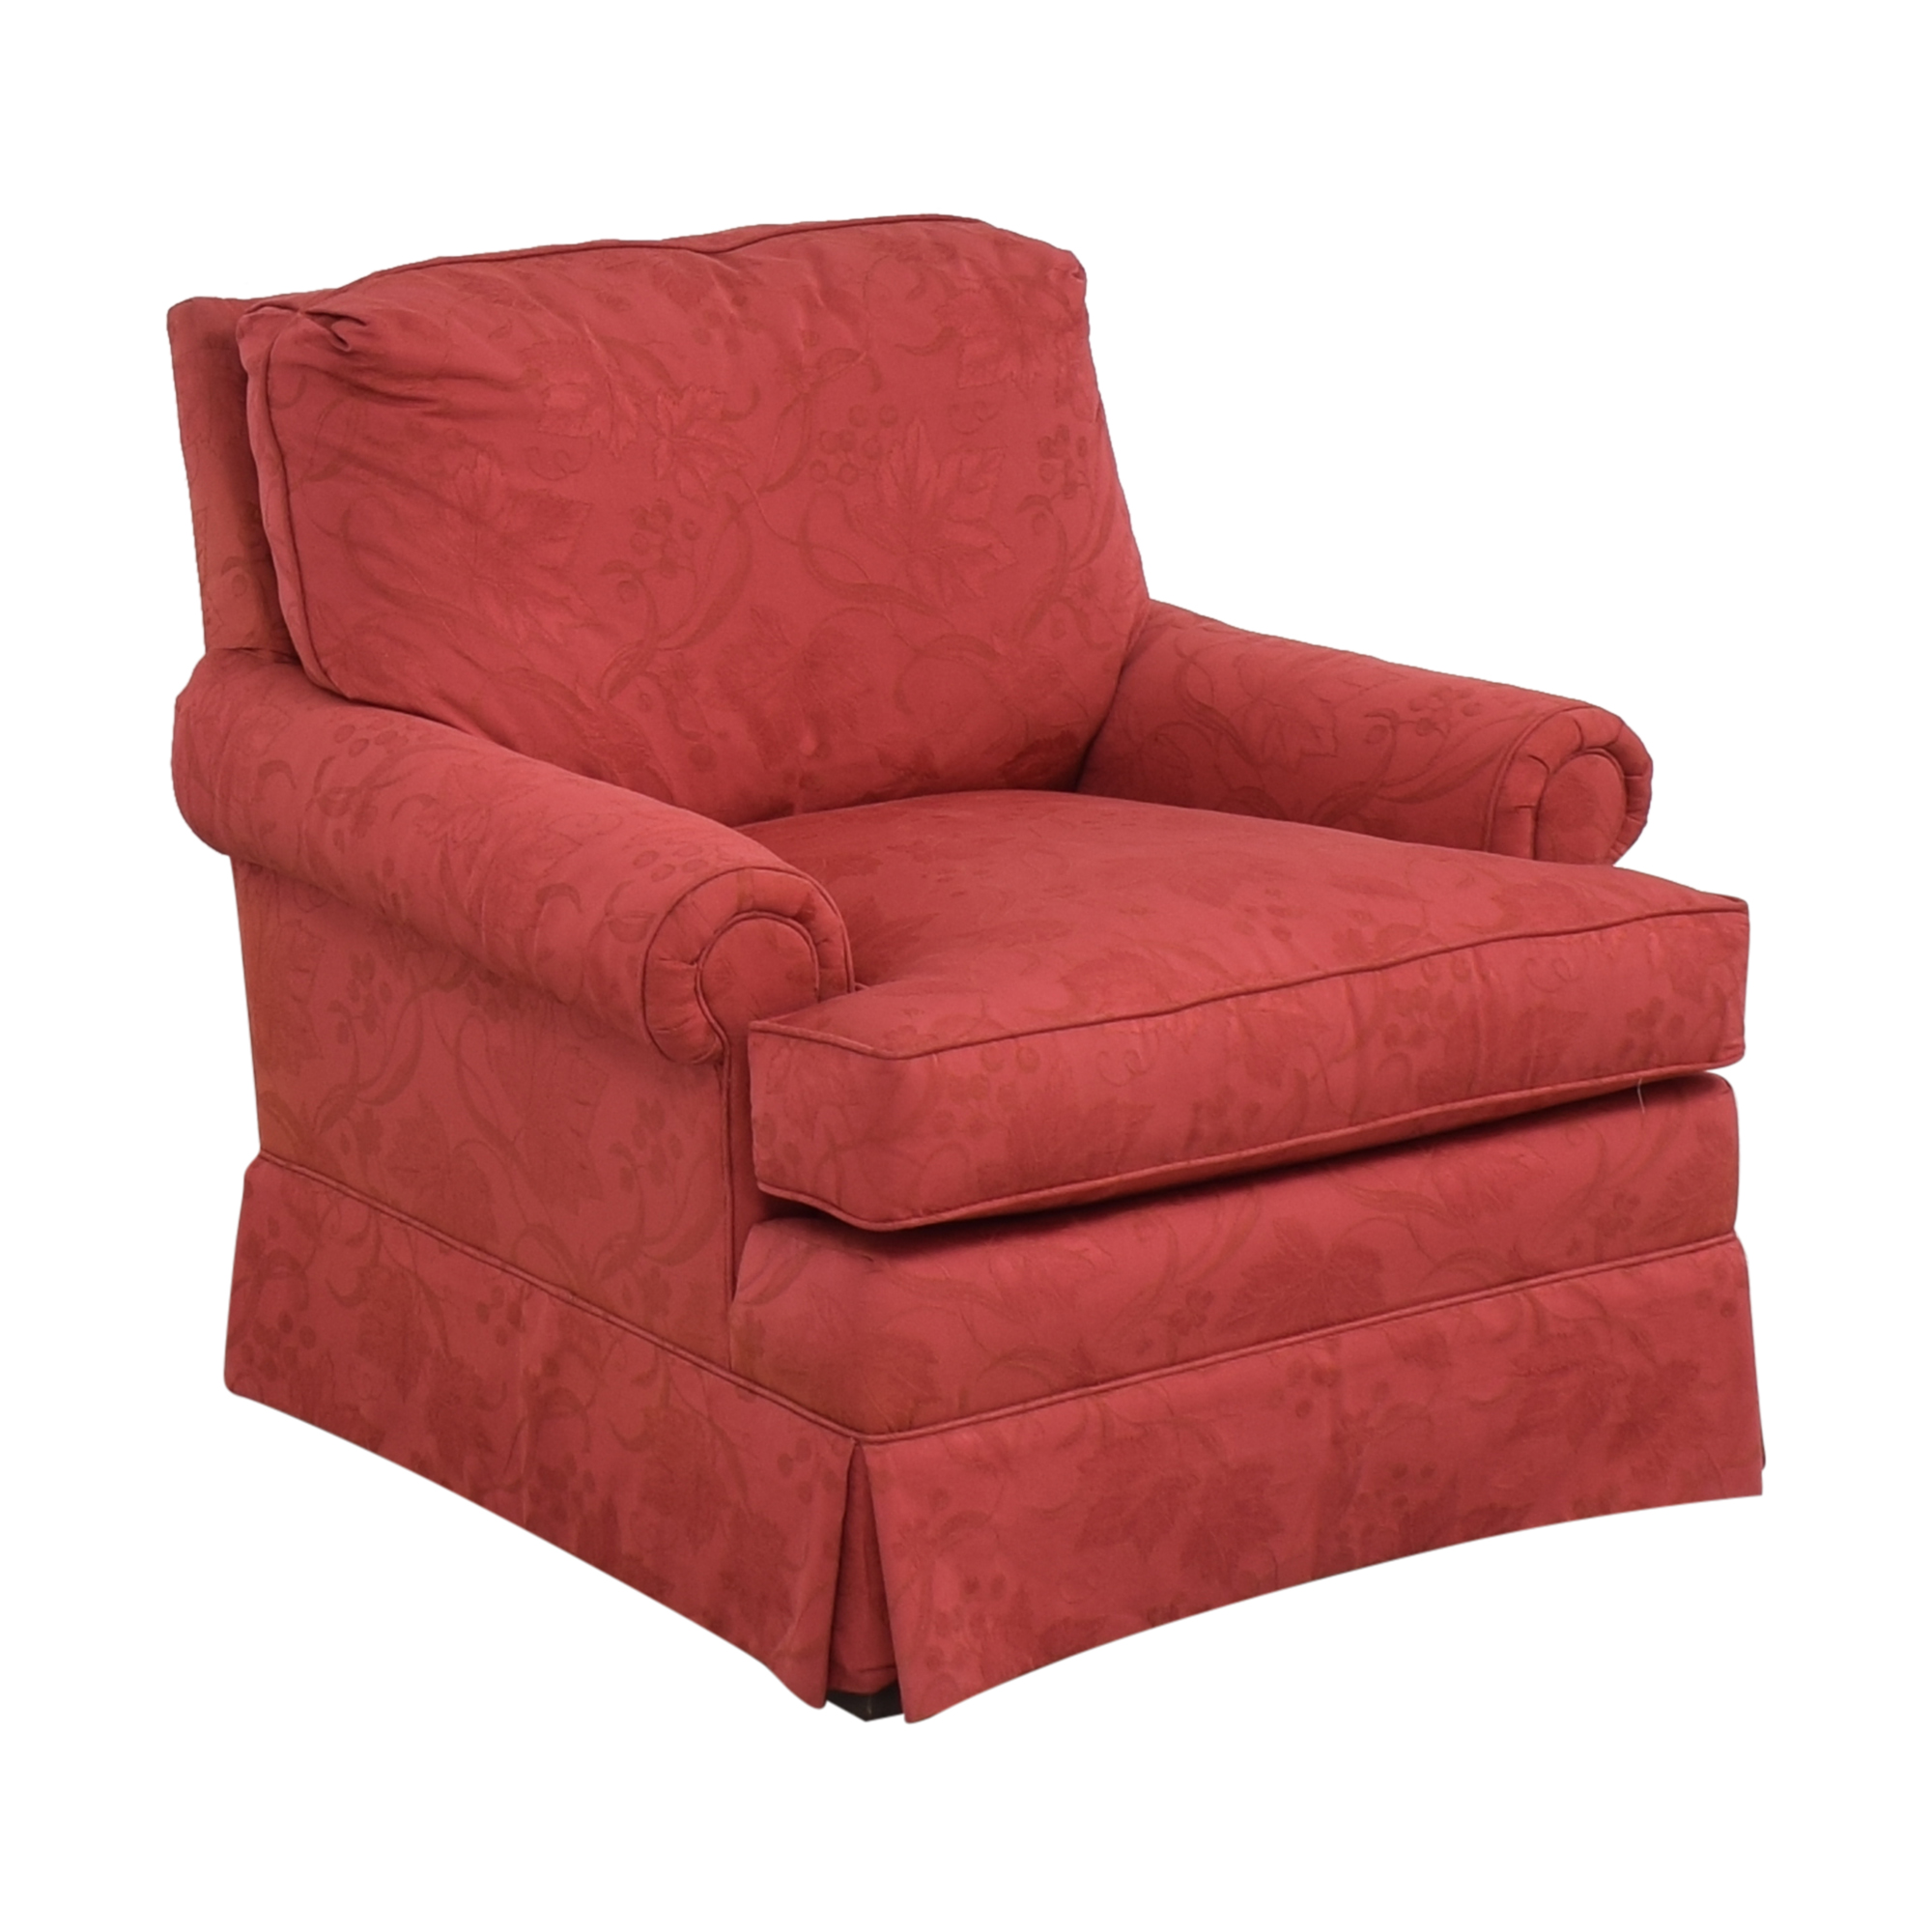 buy Harden Skirted Armchair Harden Accent Chairs